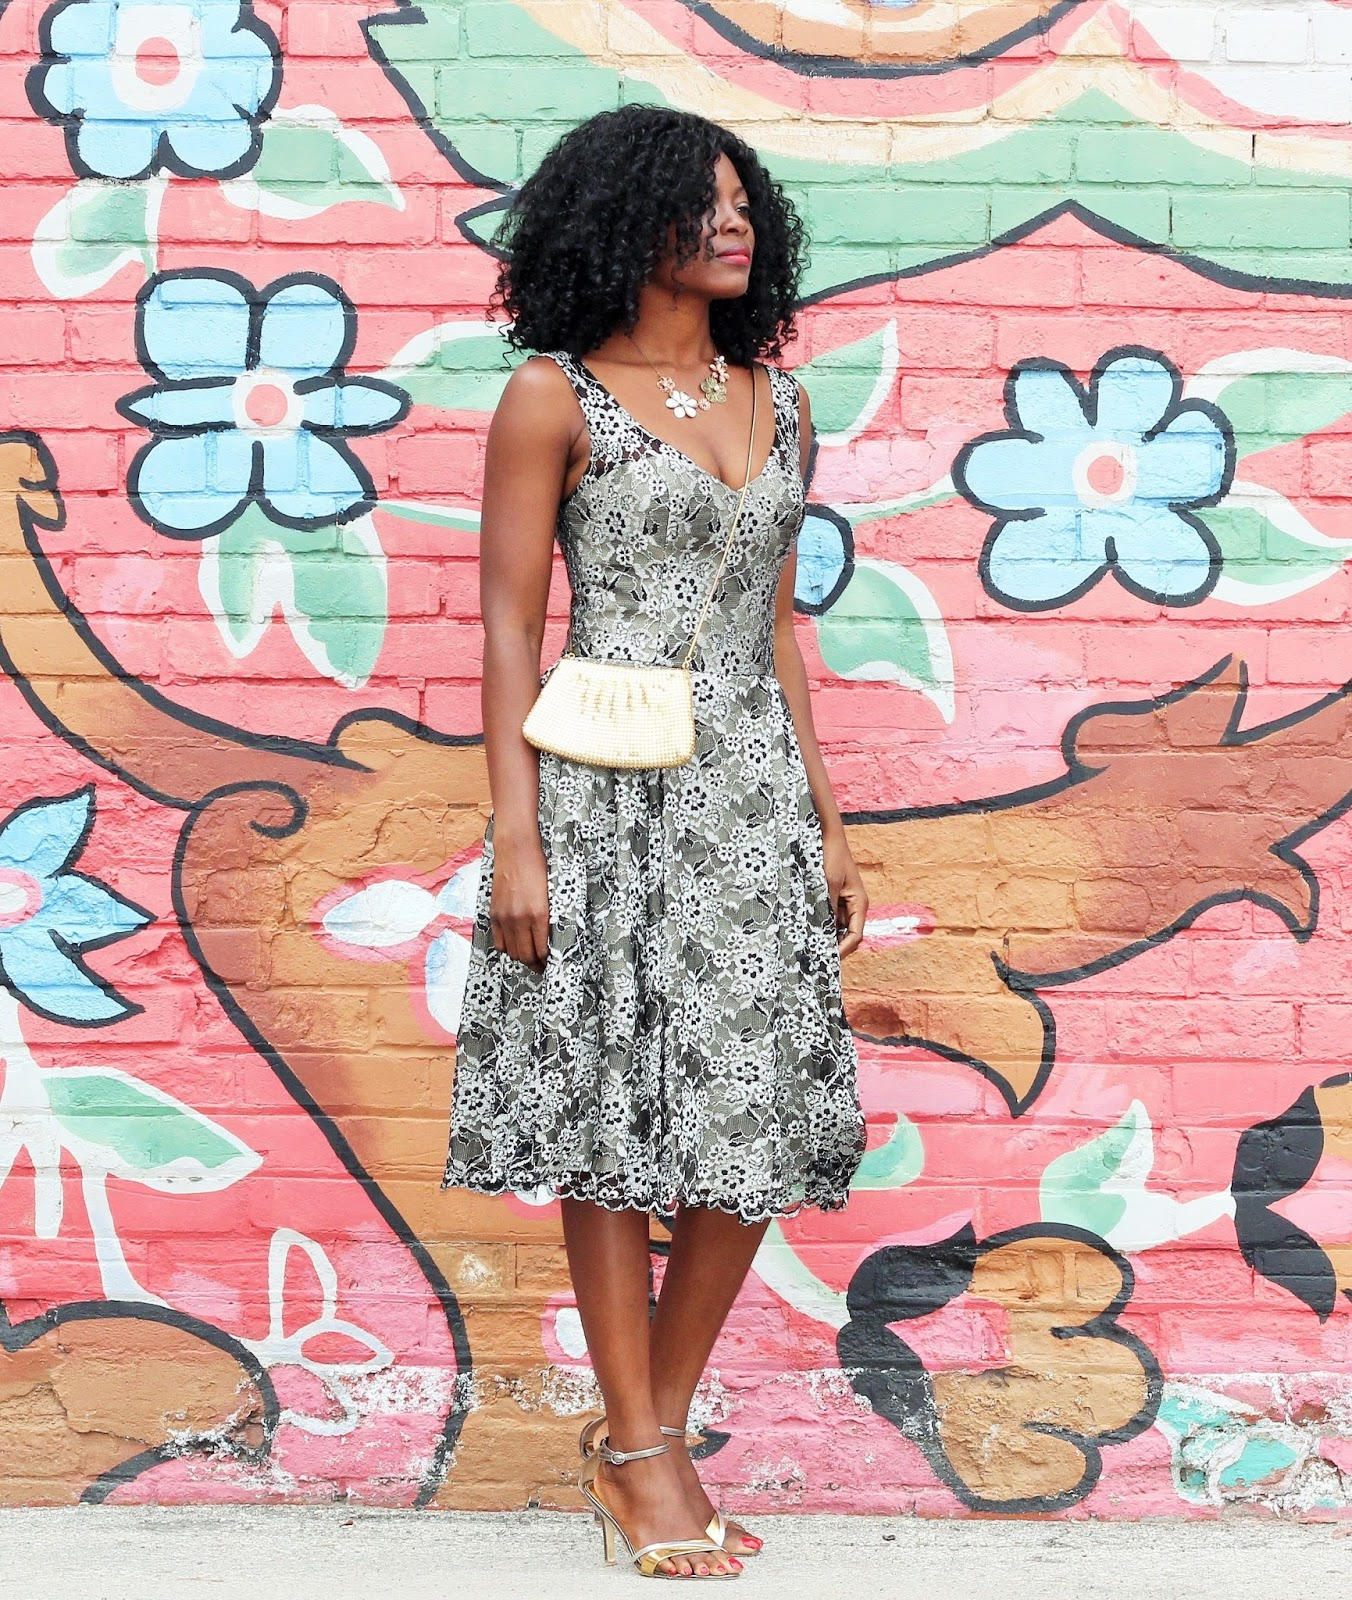 SUMMER WEDDING GUEST OUTFIT: BLACK AND LACE CLAUDETTE SWING DRESS